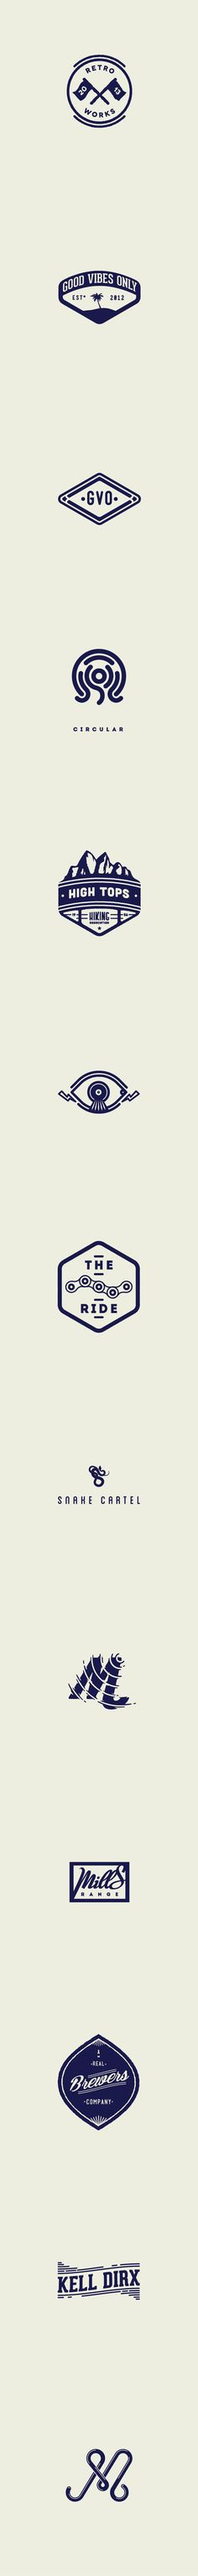 MARKS & BADGES by Gijs Dries, via Behance